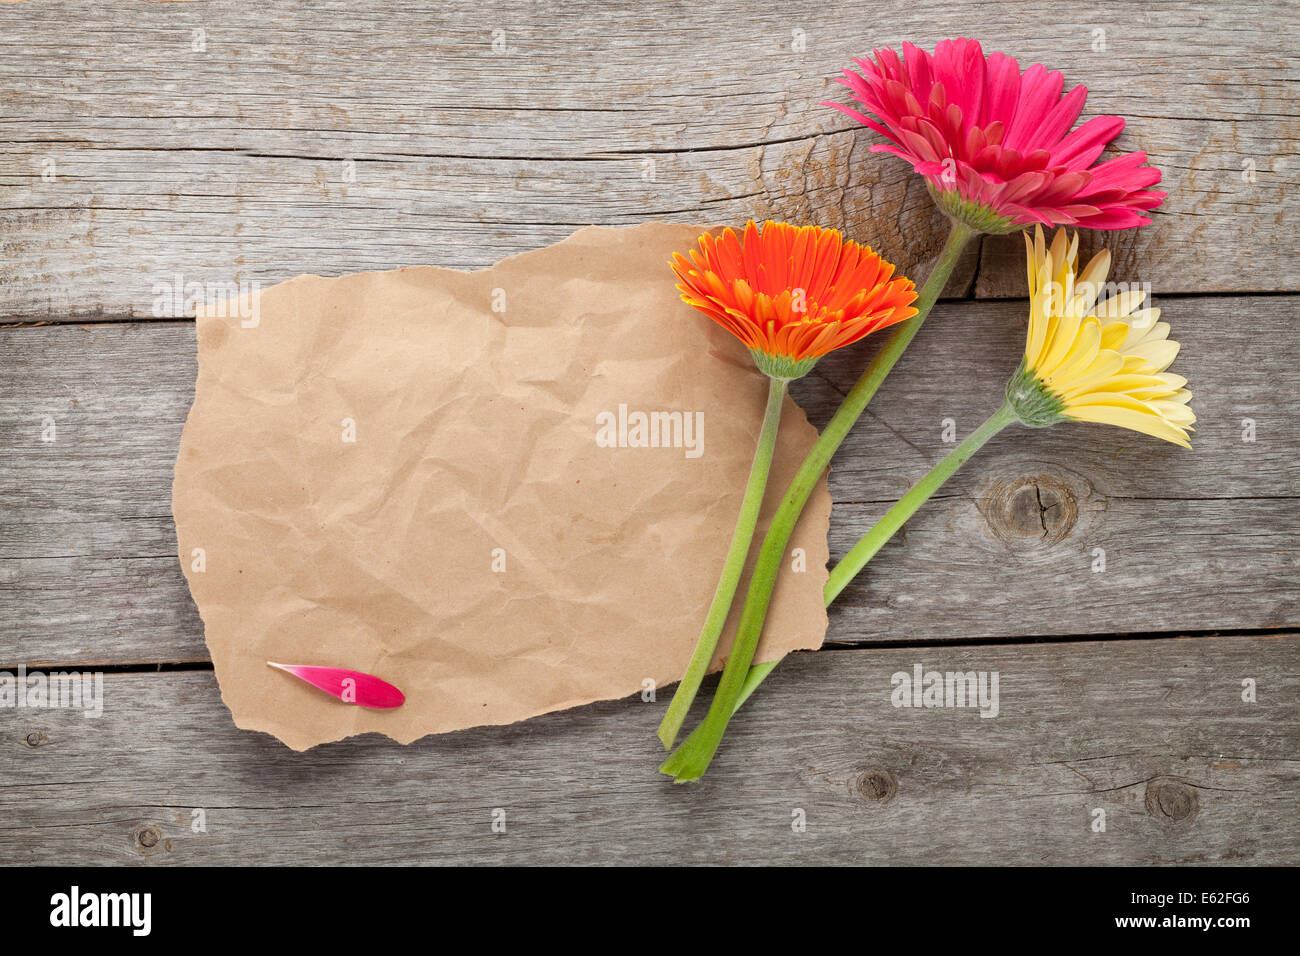 Blank Paper And Gerbera Flower On Wood Stock Photos Blank Paper